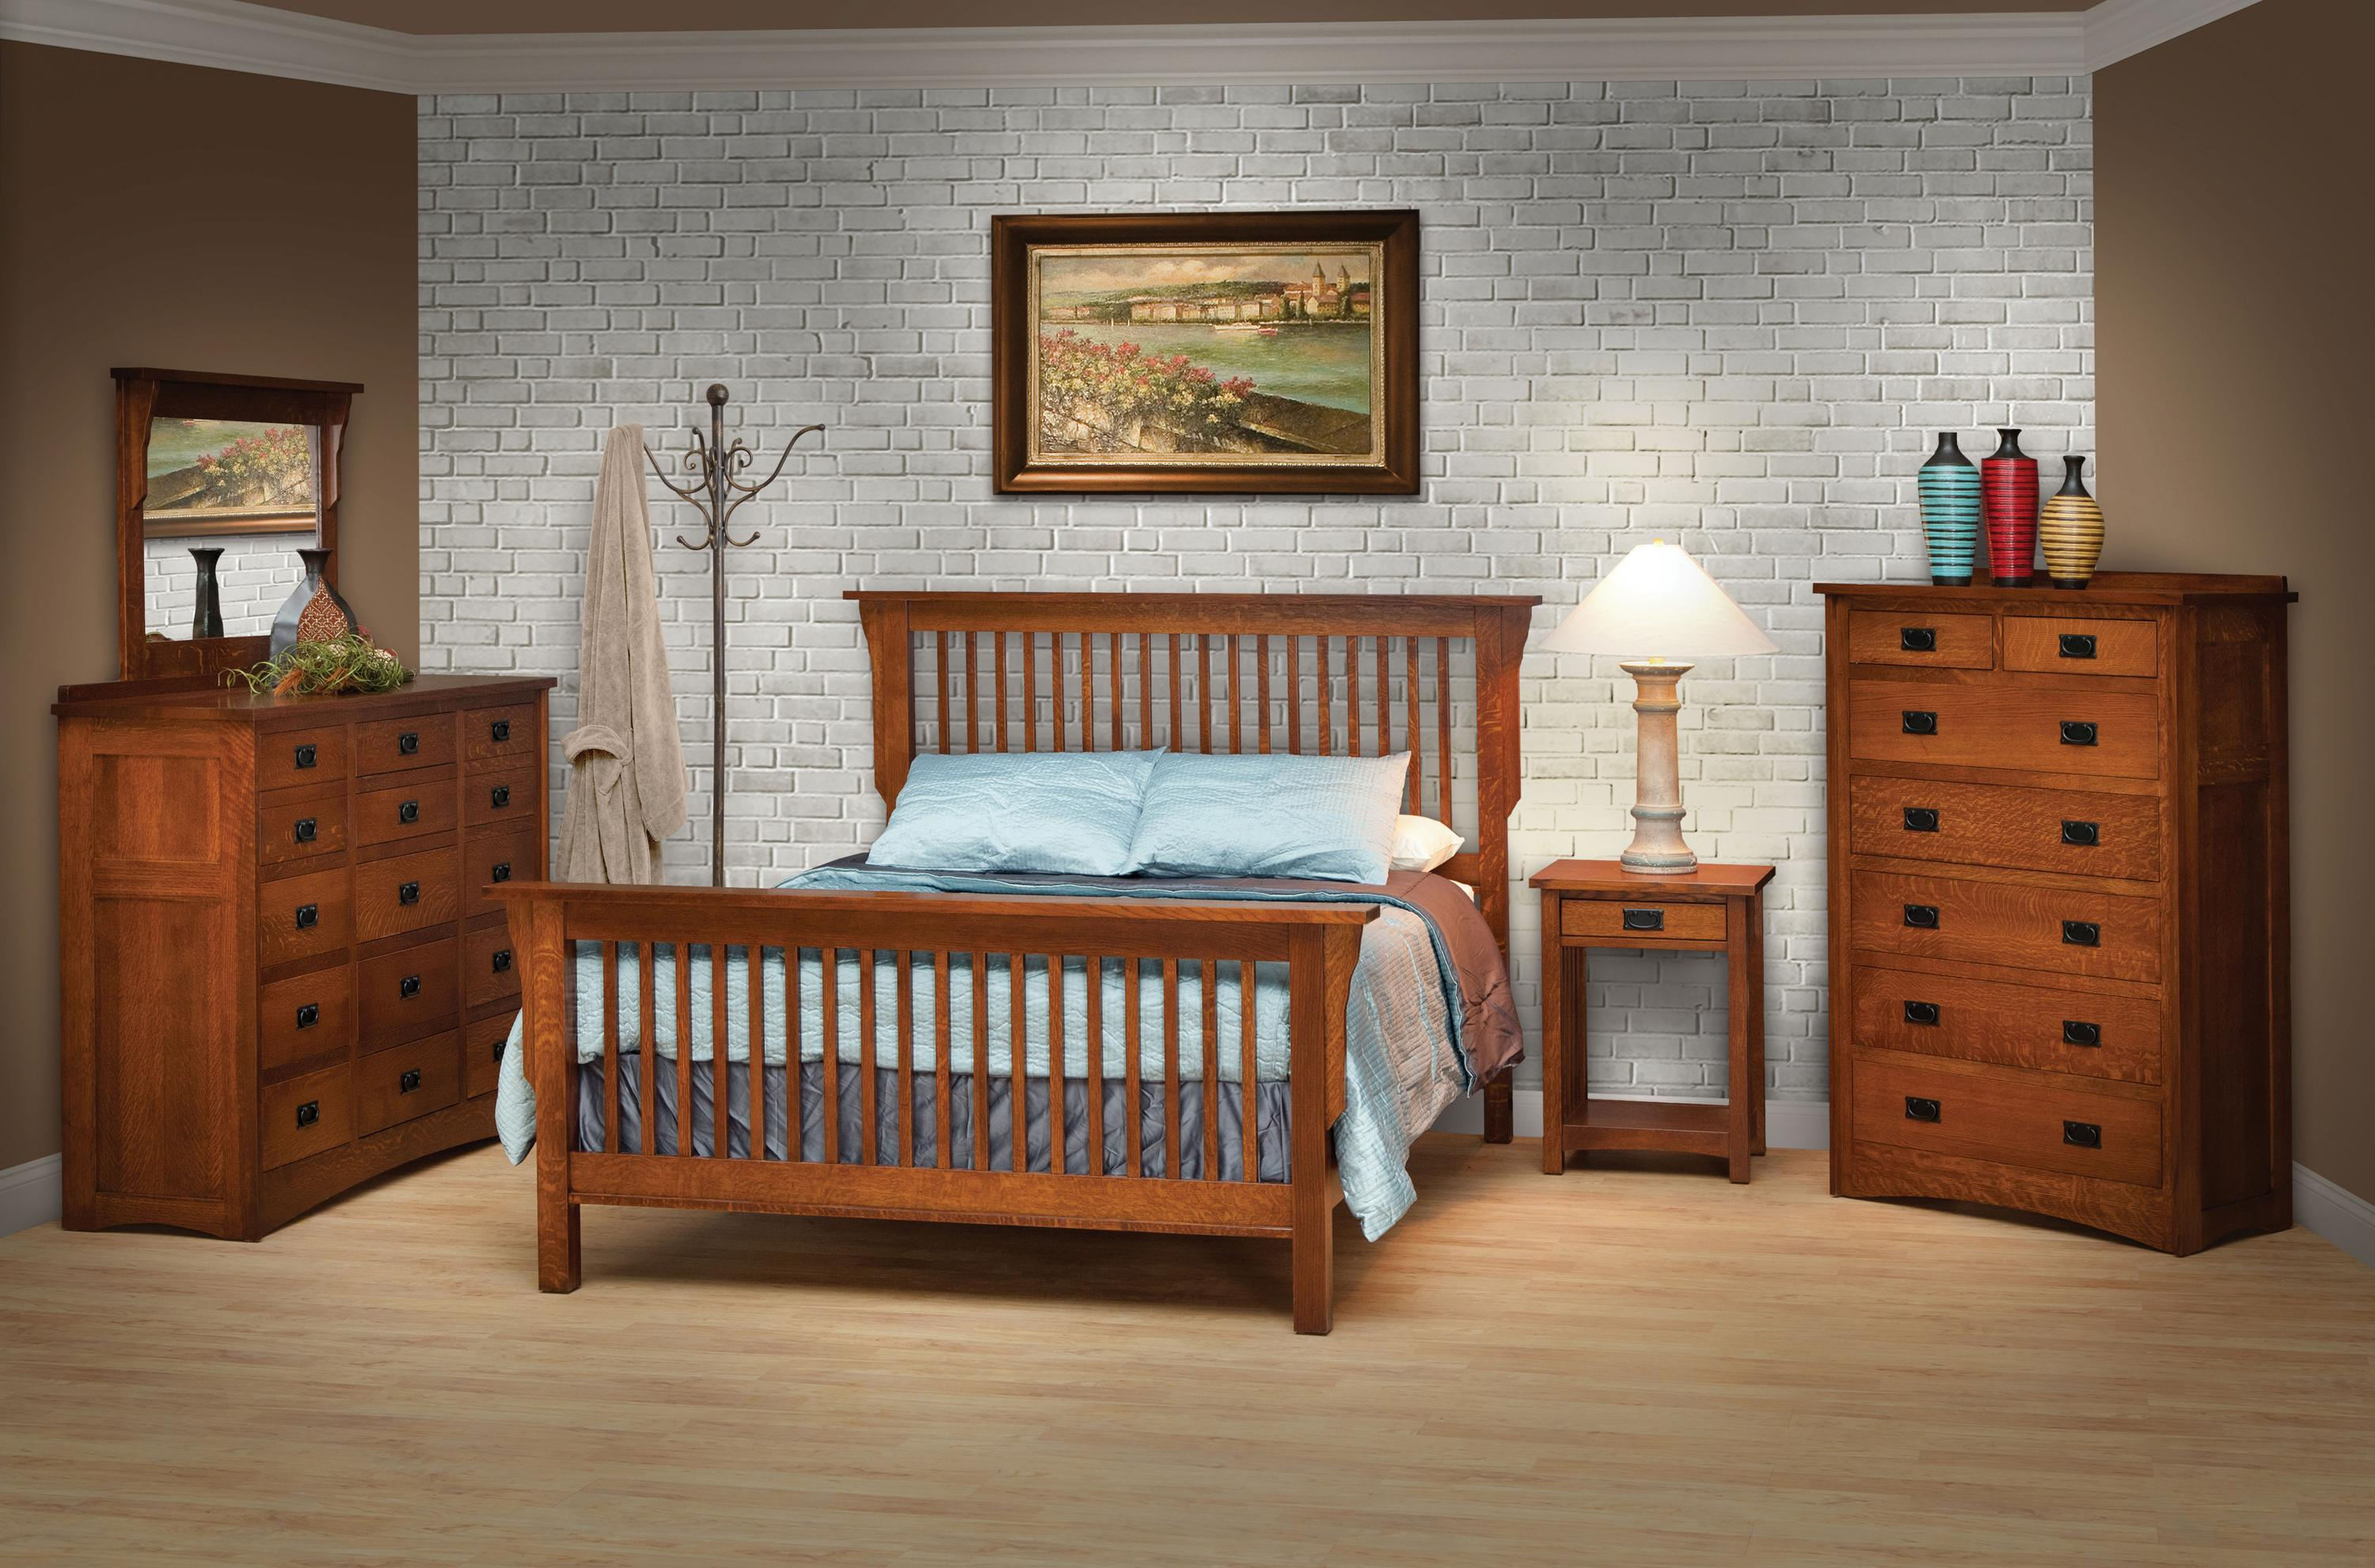 California king mission style frame bed with headboard for Bed styles images